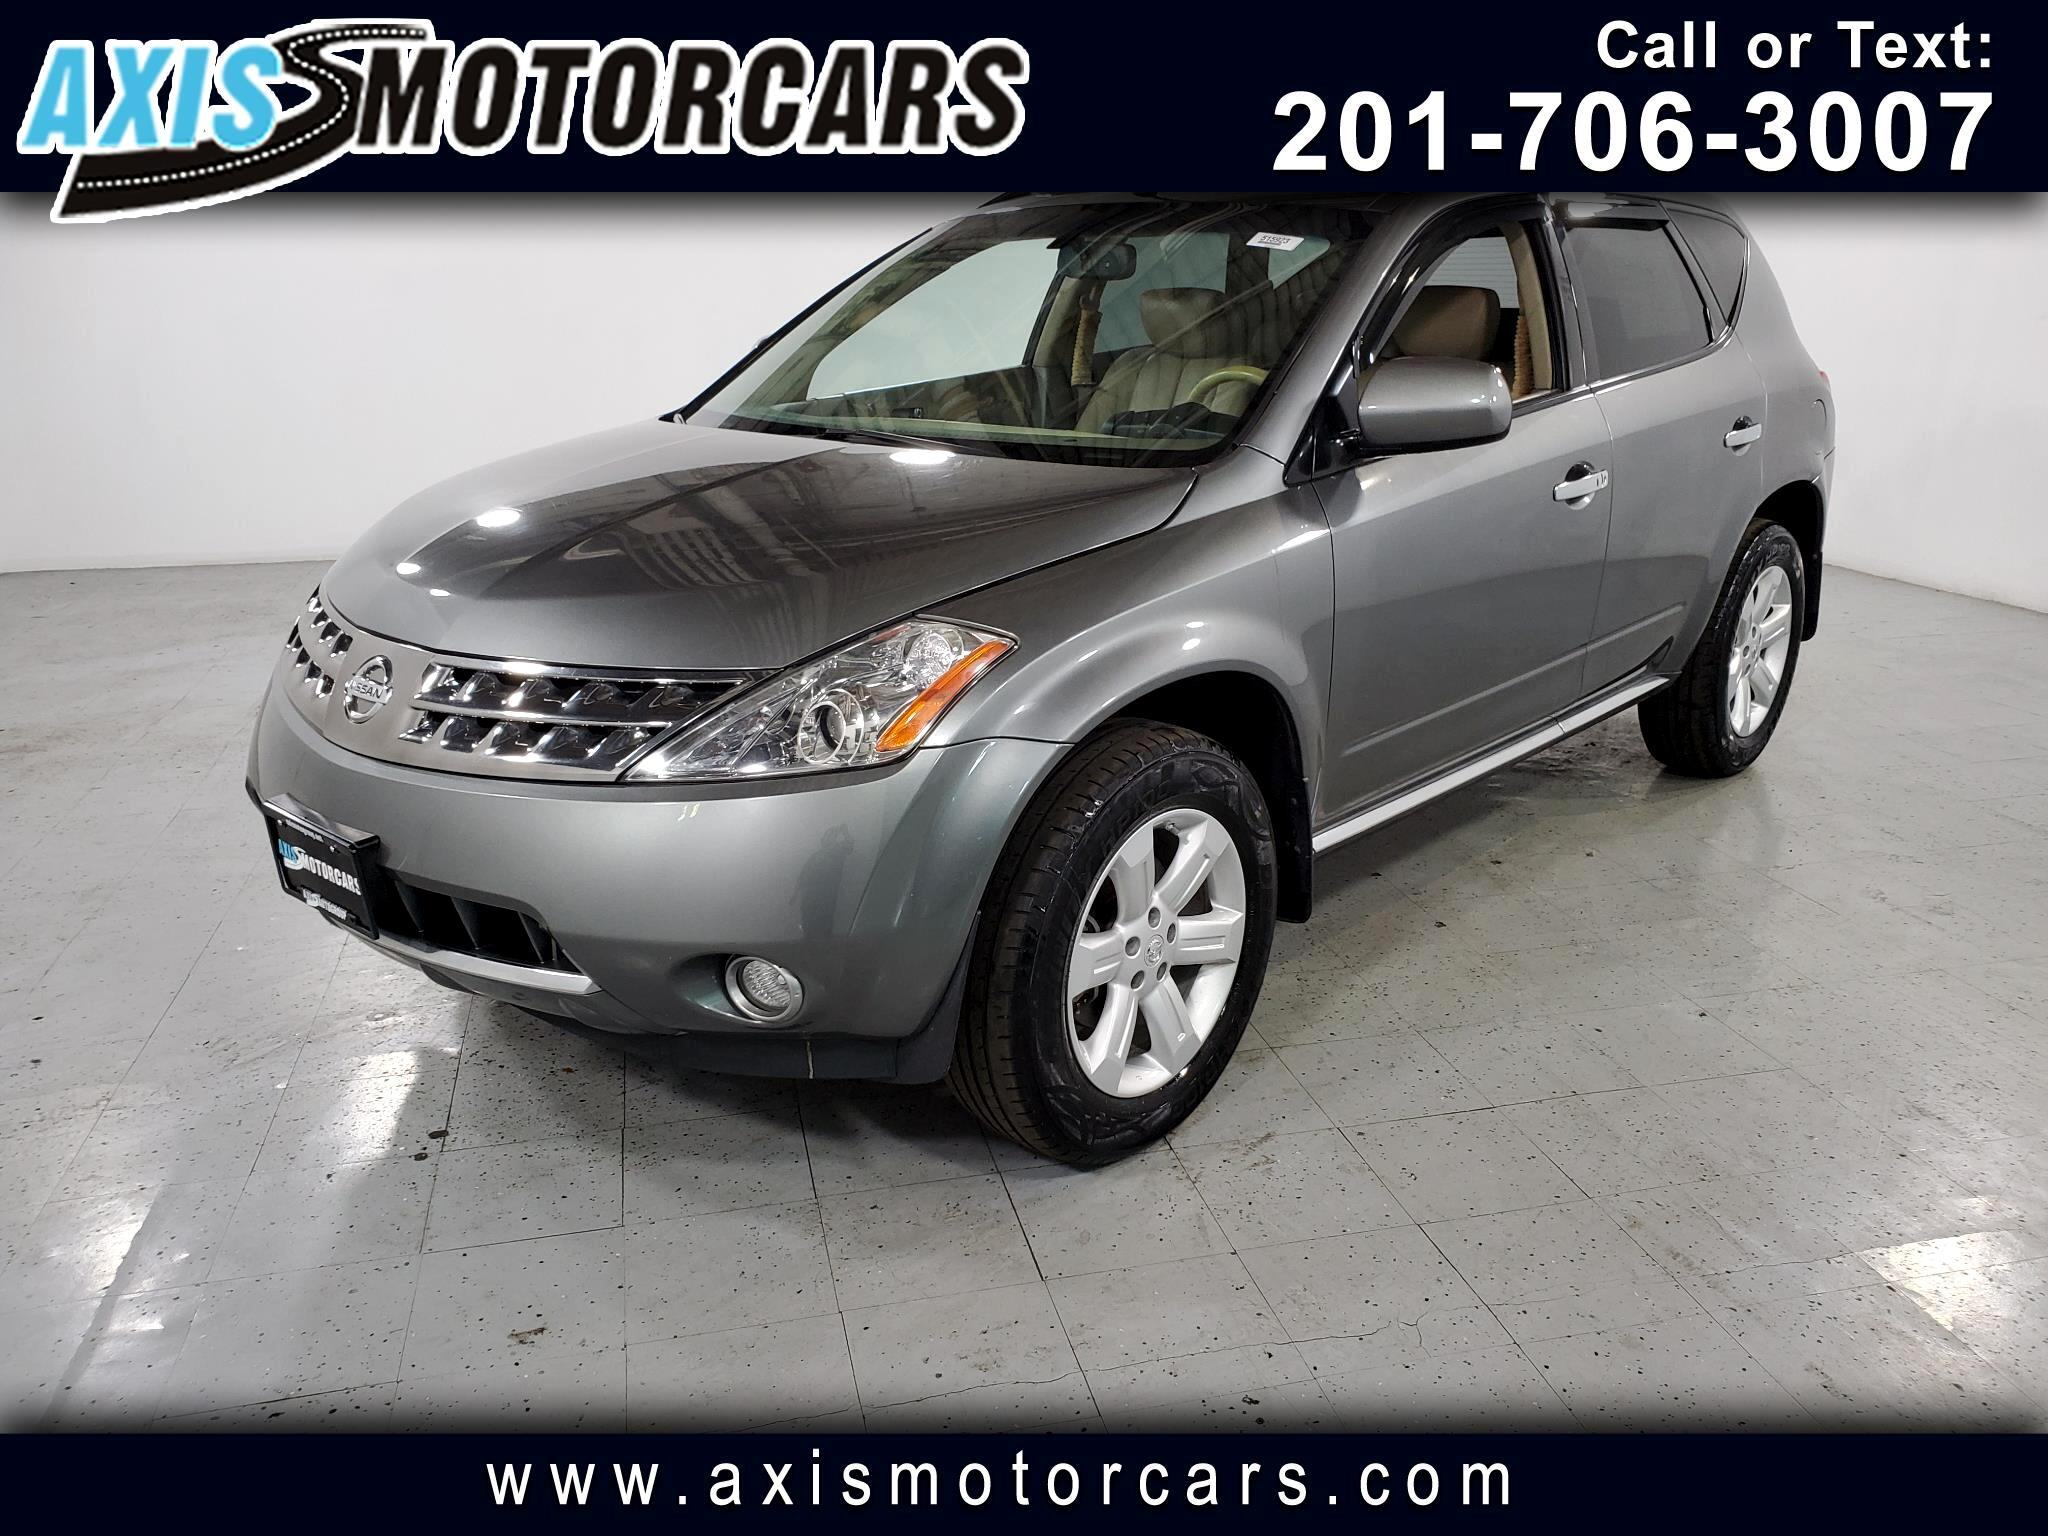 2007 Nissan Murano SL w/Backup Camera Sunroof Leather